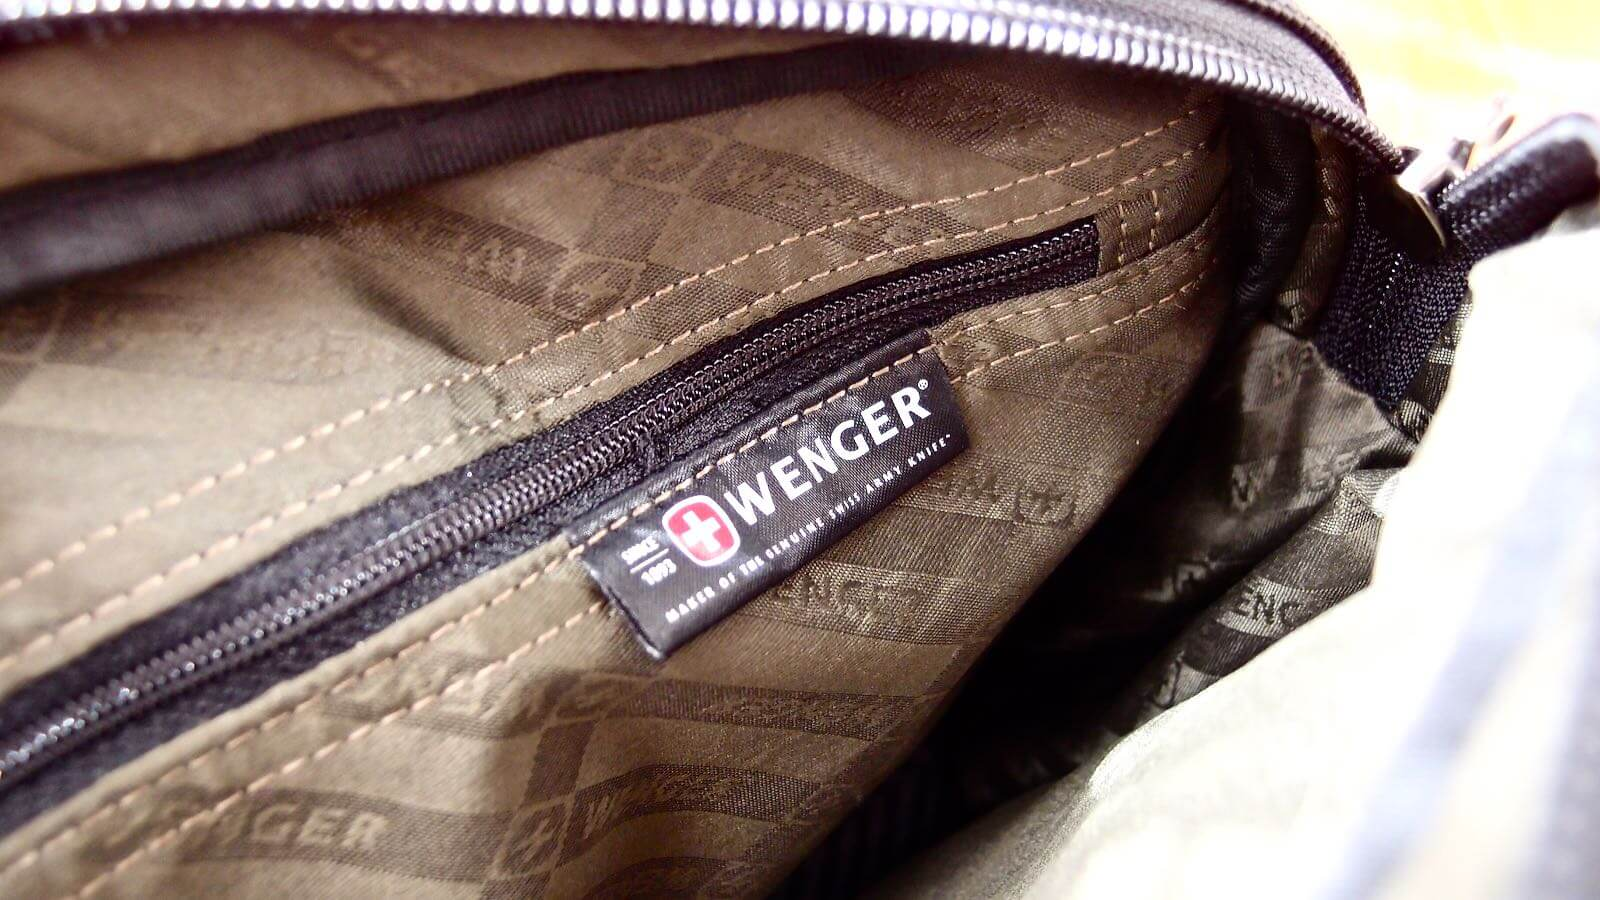 0109 WENGER Anglyph II Bag Review 04